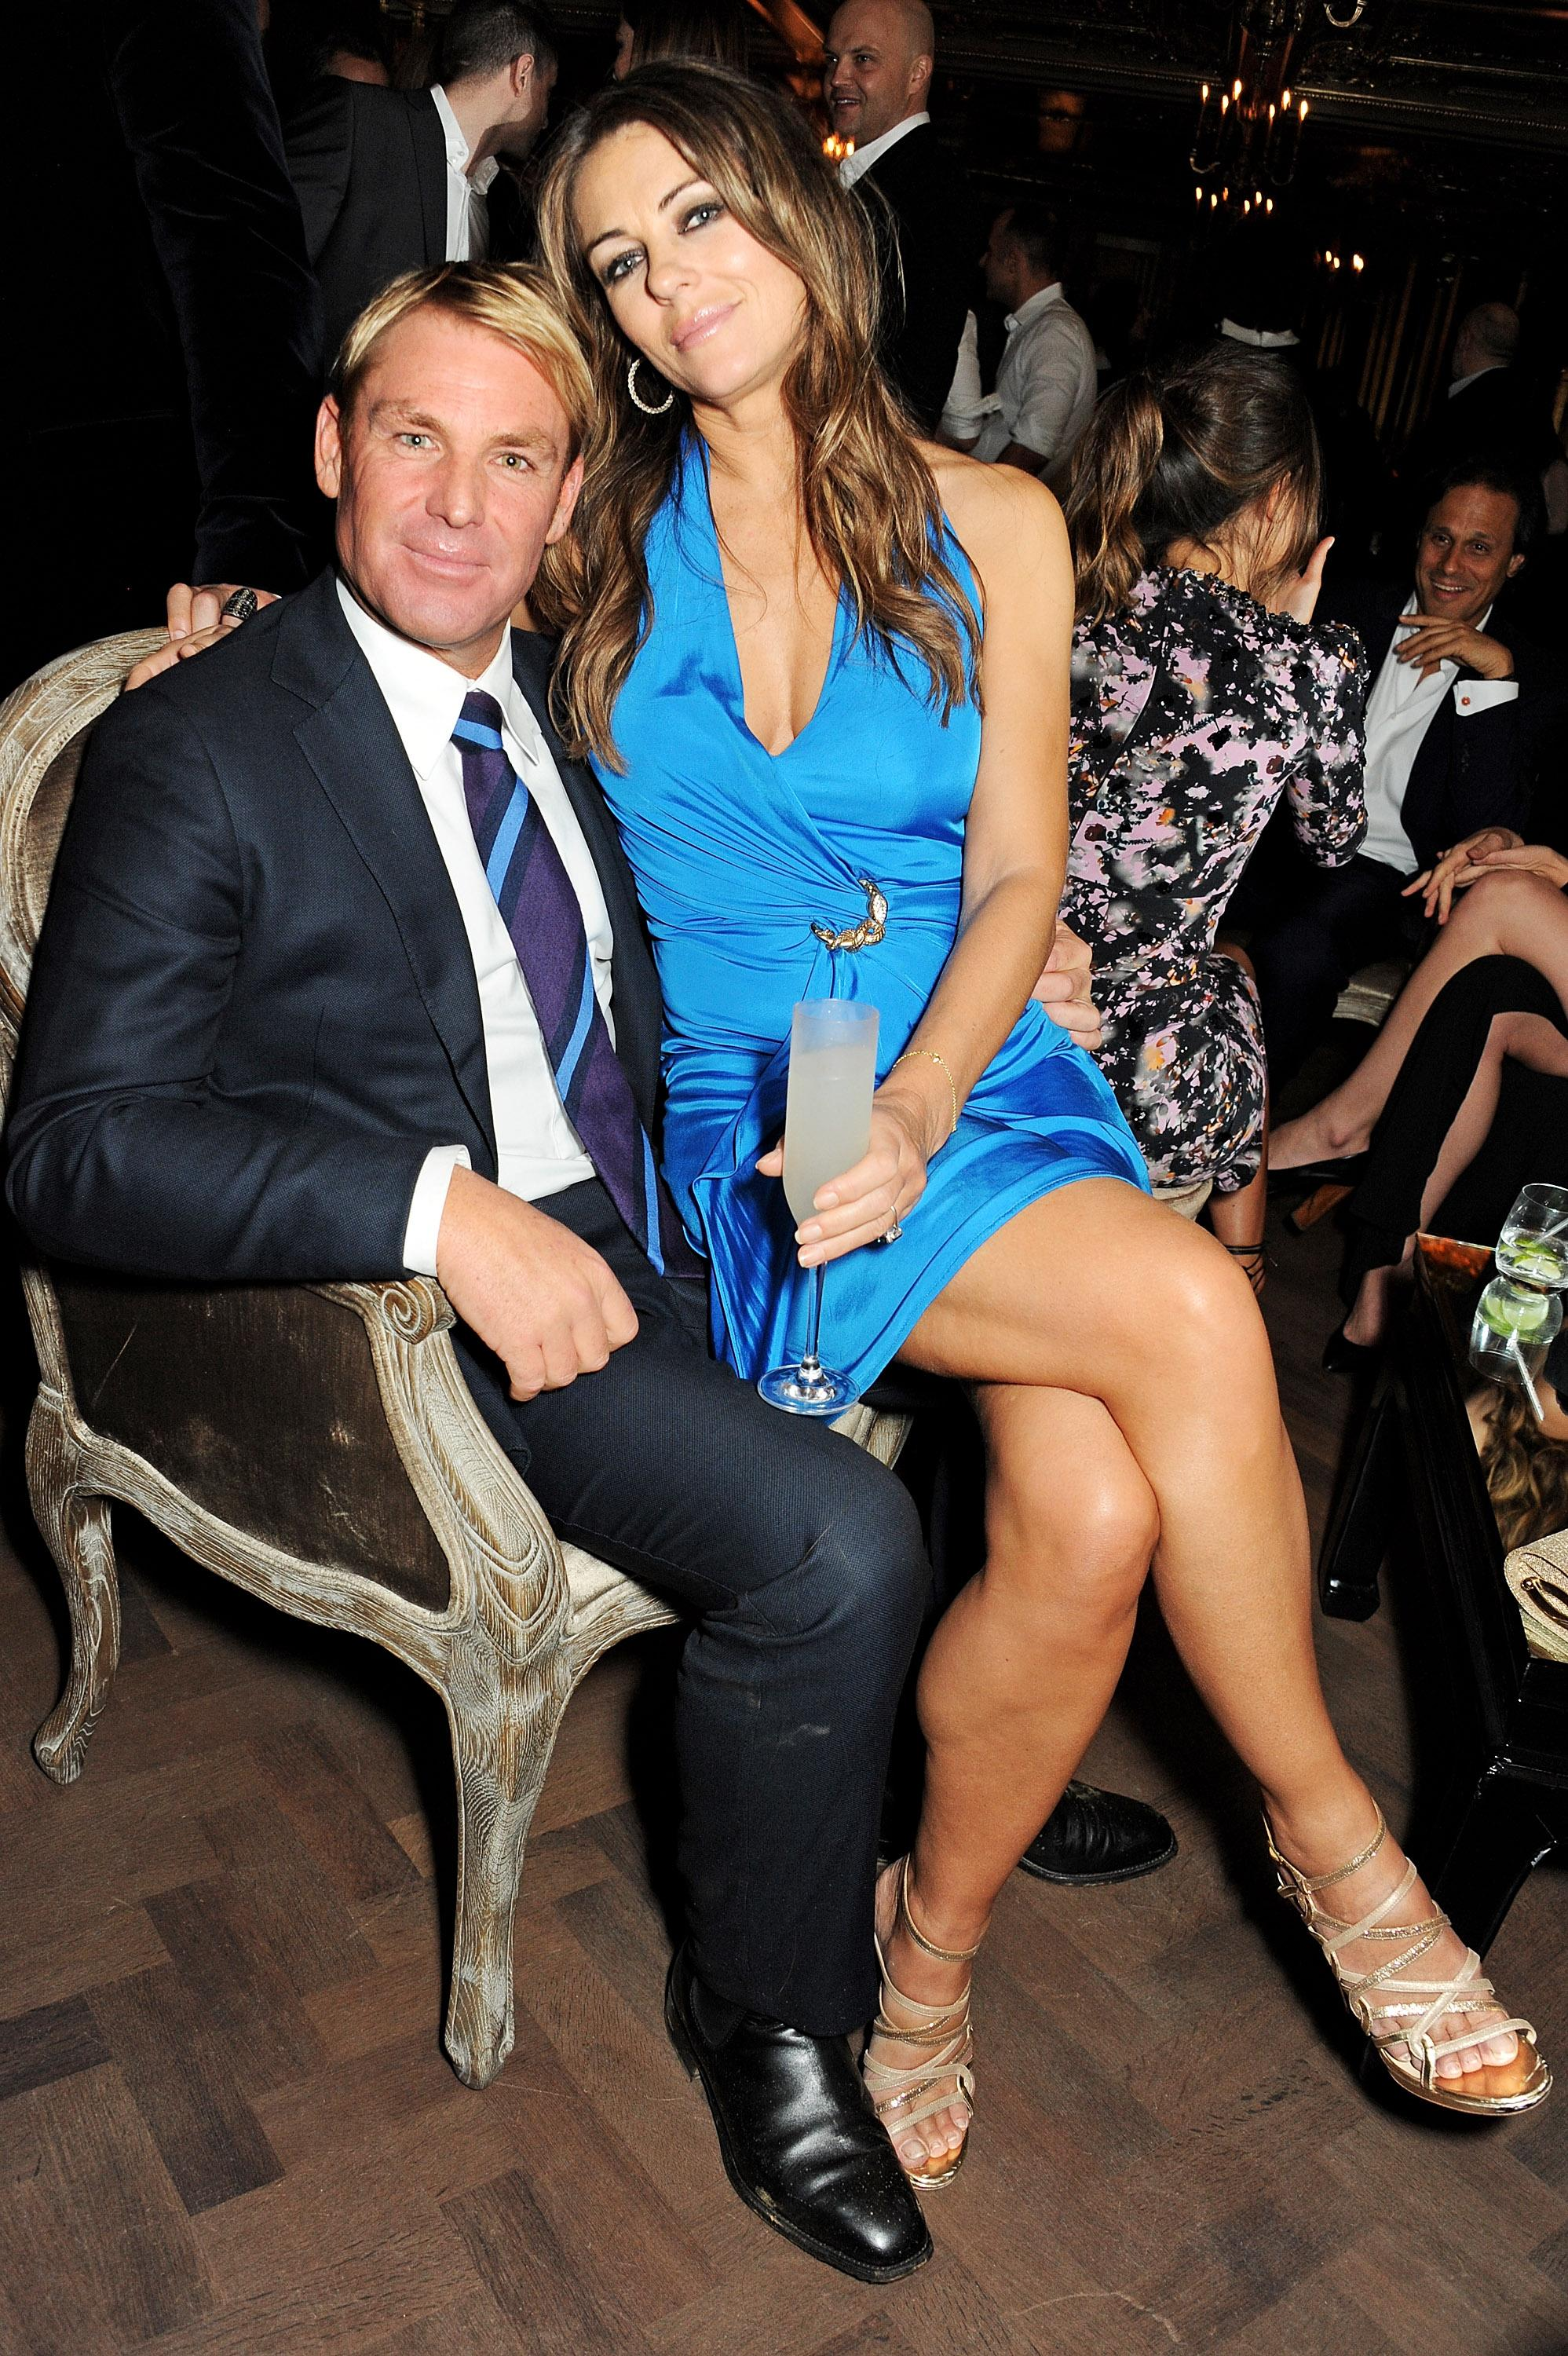 Shane Warne said he fell in love with British actress Liz Hurley who he dated between 2010-2013